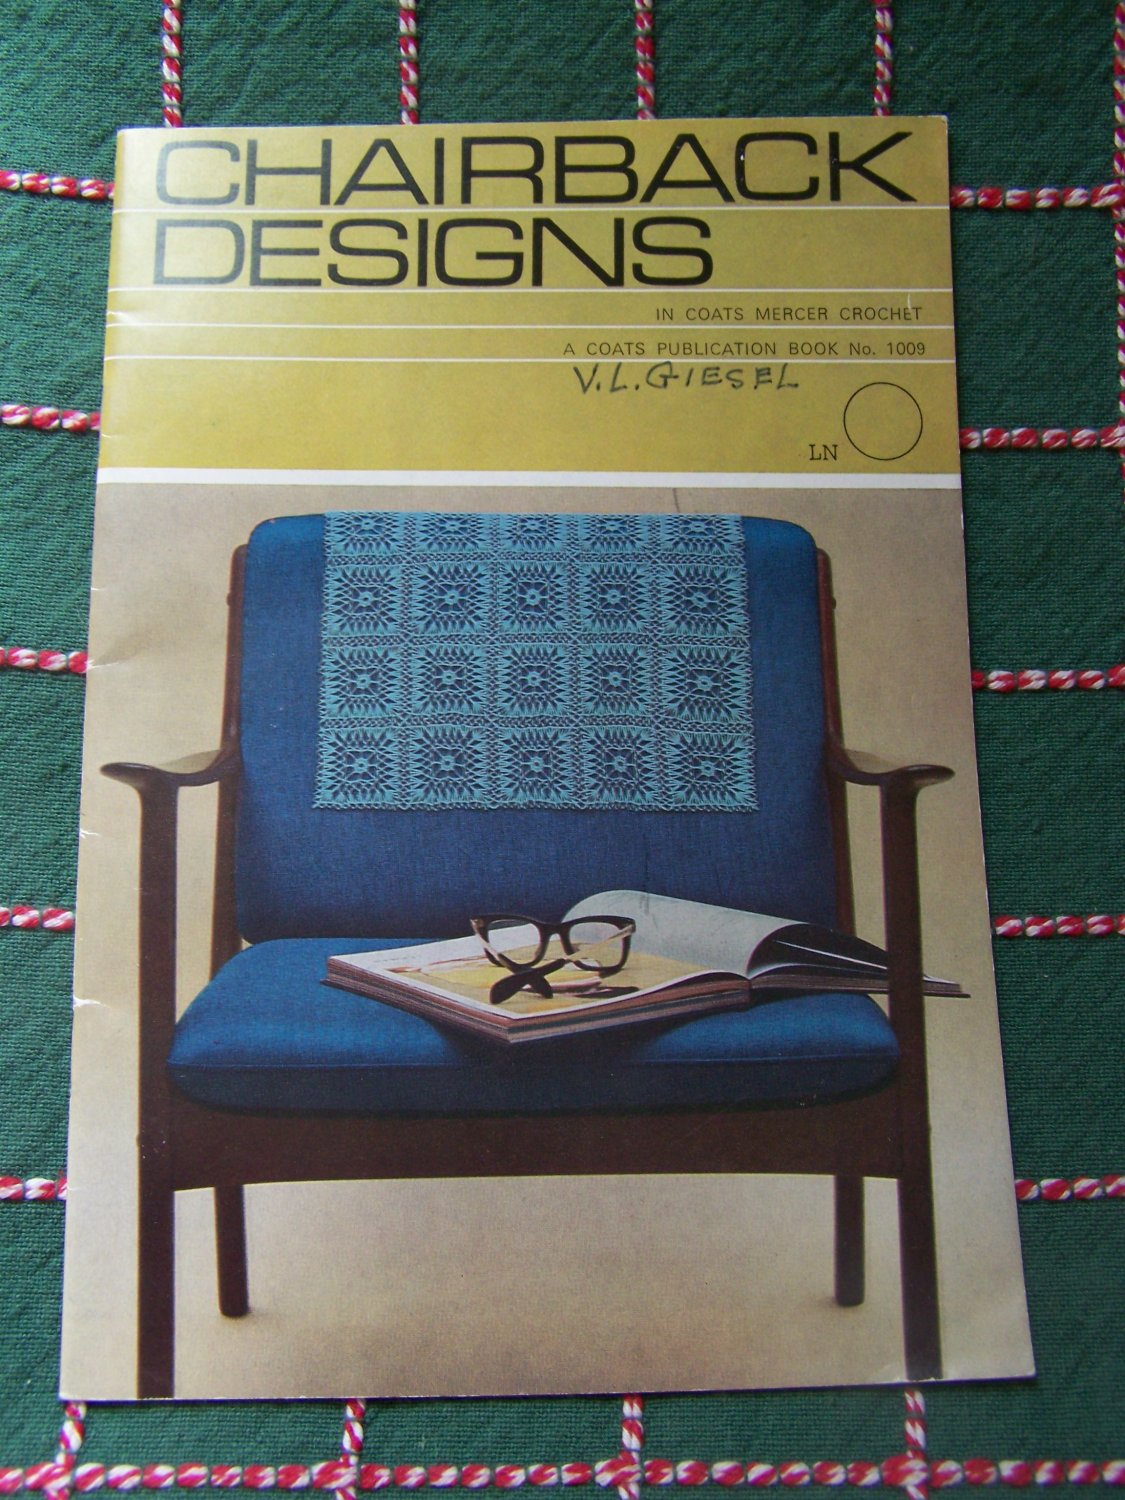 Vintage Crochet Patterns Chairback Designs Couch Doilies 1009 Free USA S&H